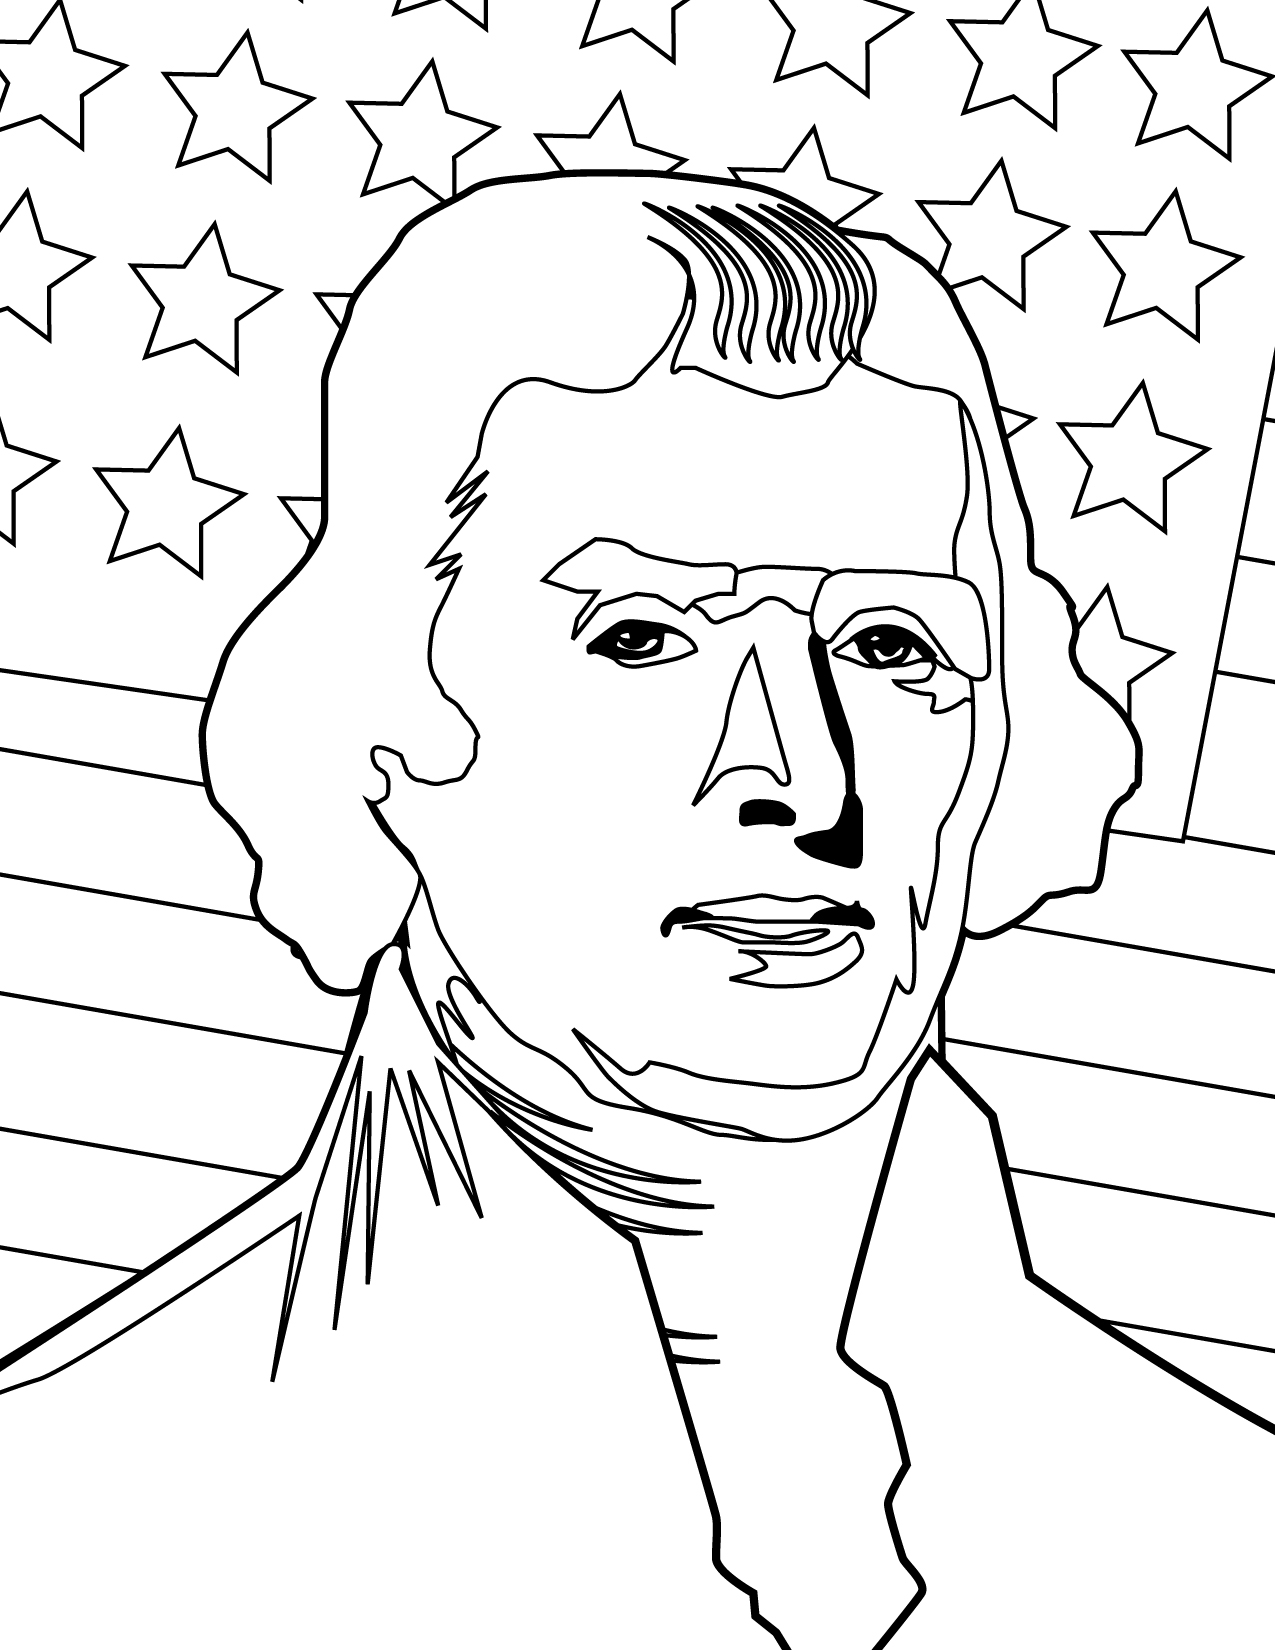 Thomas Jefferson Coloring Pages Az Coloring Pages Jefferson Coloring Pages